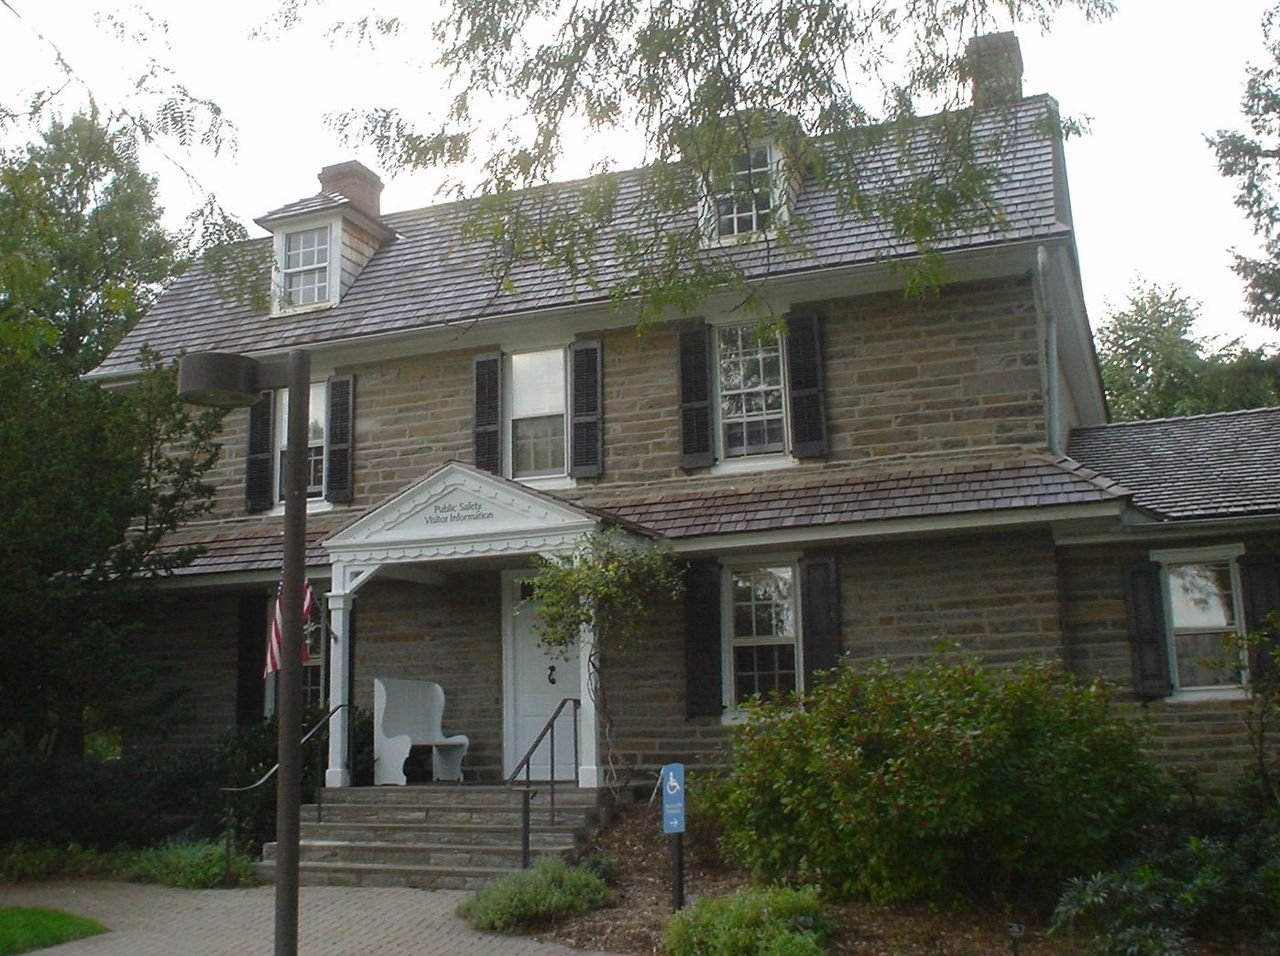 Benjamin West's birthplace was built around 1724 and has been part of Swarthmore College for over a century.